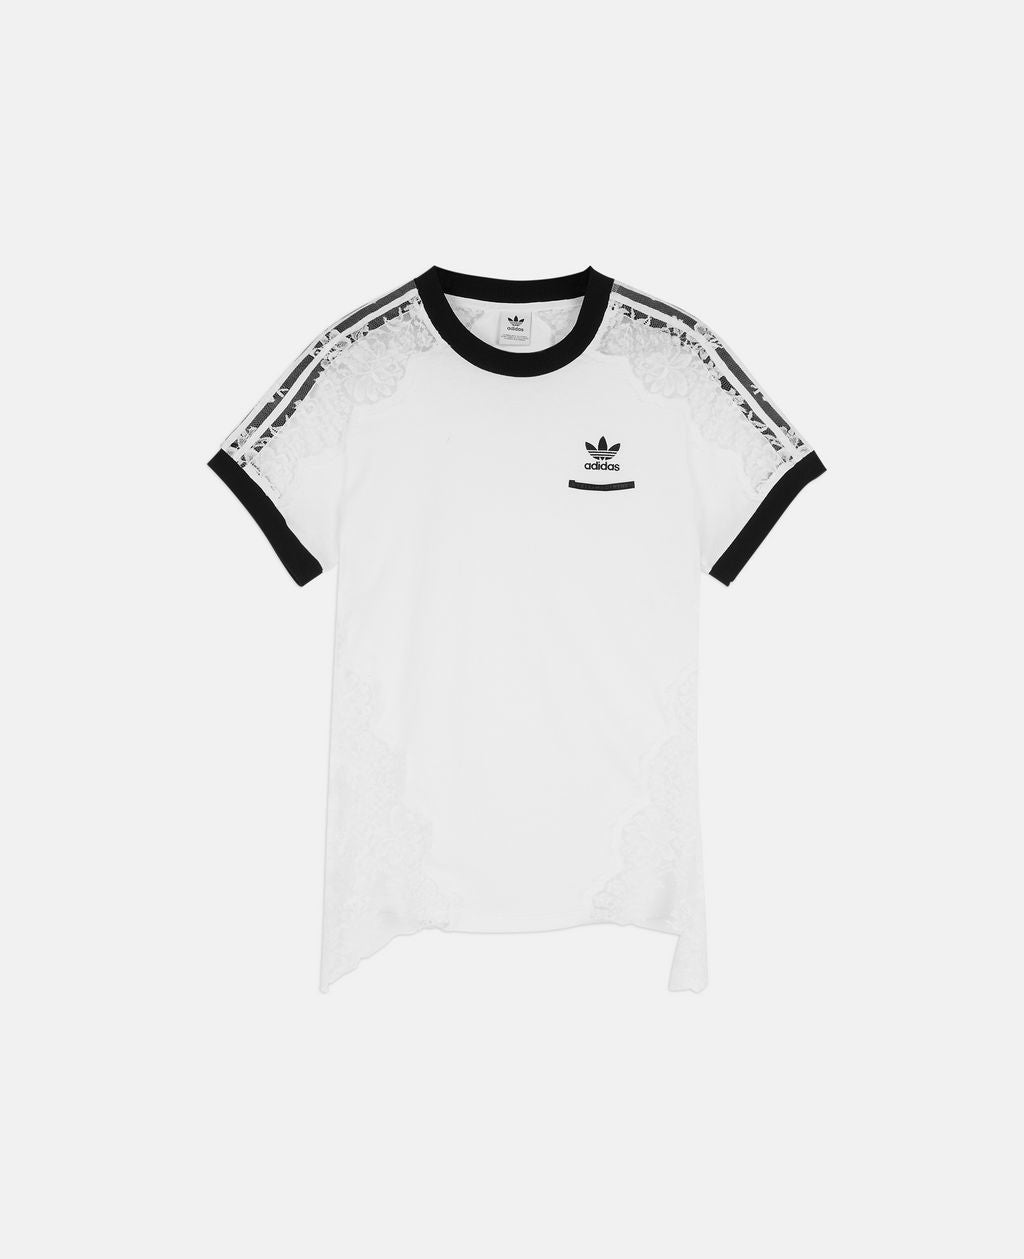 STELLA MCCARTNEY - Adidas Lace Tee